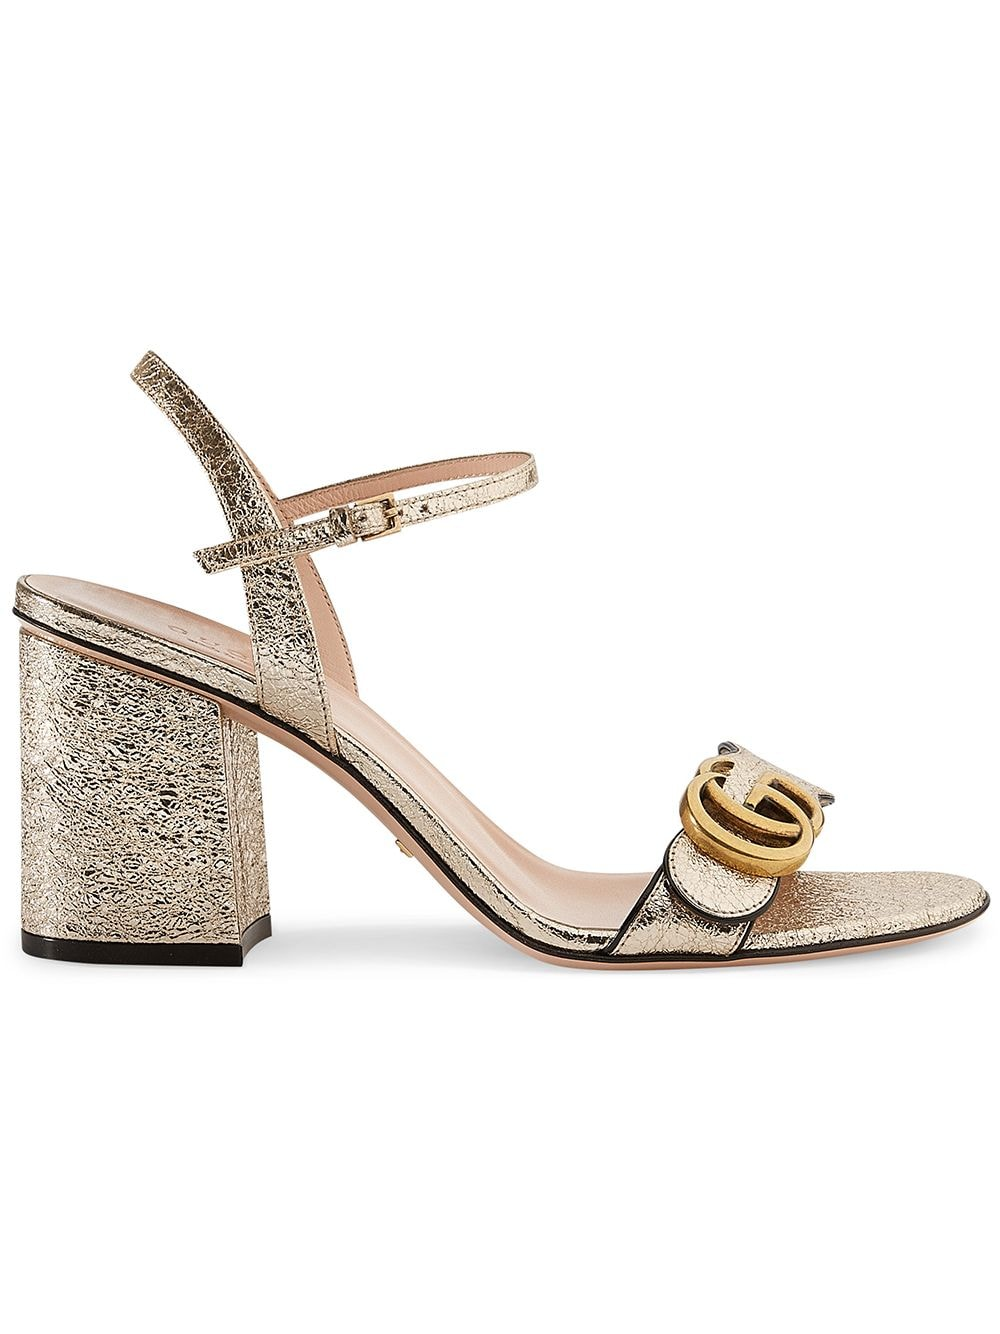 Gucci Metallic laminate leather mid-heel sandal von Gucci